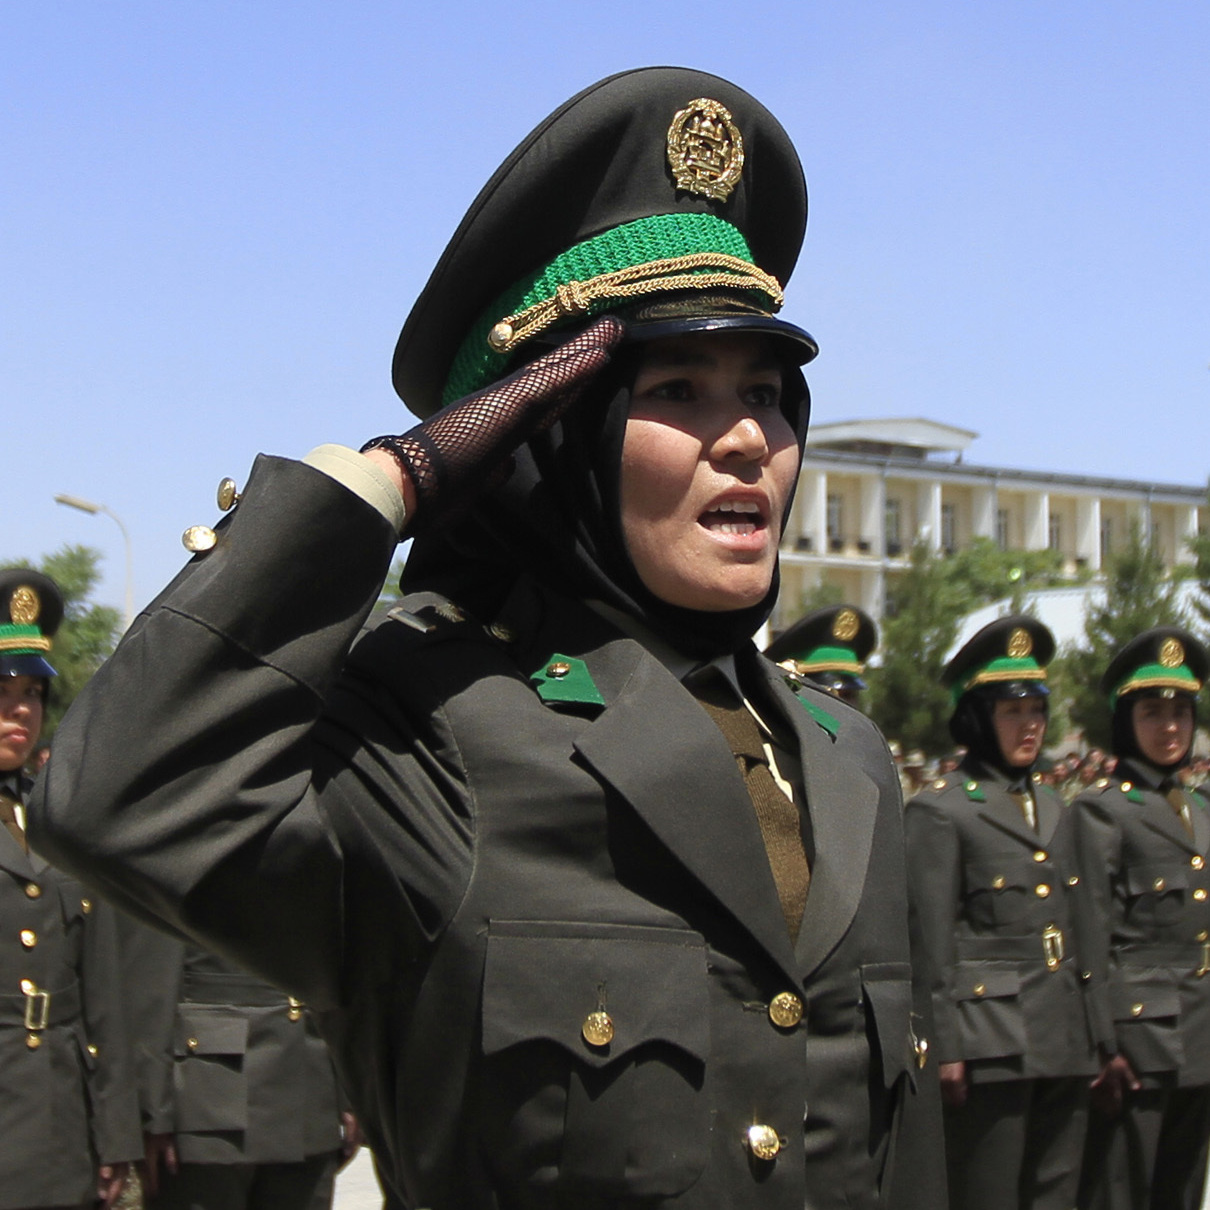 A female officer salutes during a graduation ceremony at the Kabul Military Training Center in Kabul June 13, 2012. Around 2000 Afghan soldiers and officers including 16 women graduated on Wednesday at the training center in Kabul.